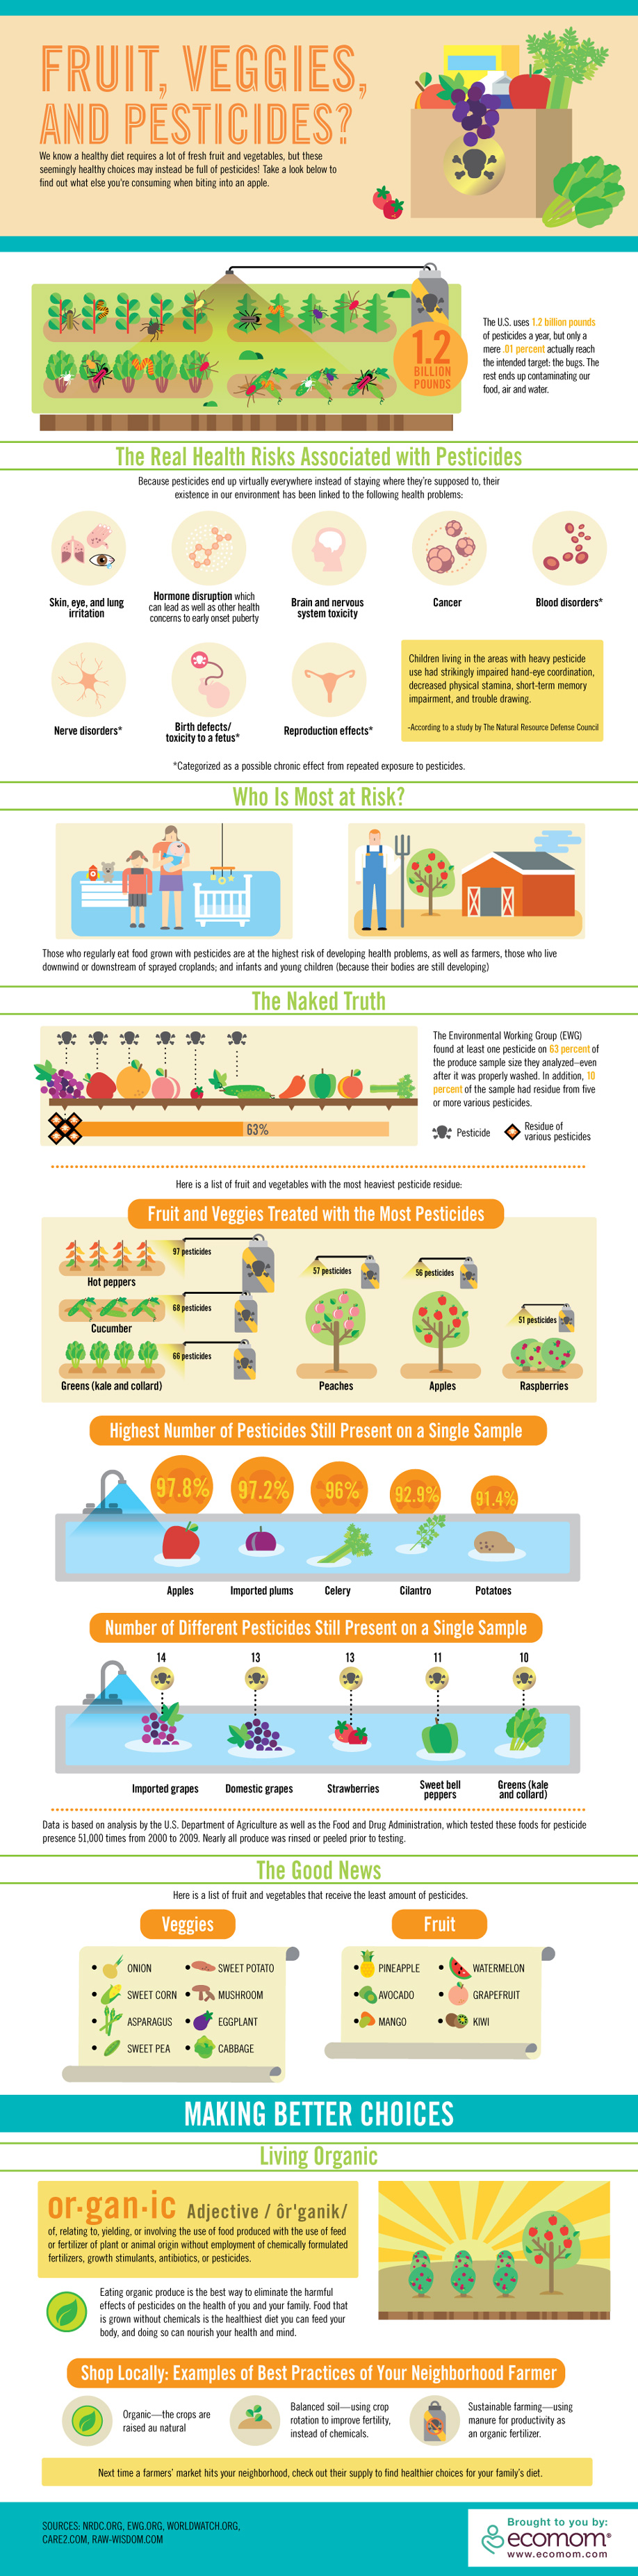 fruits-vegetables-pesticides-infographic